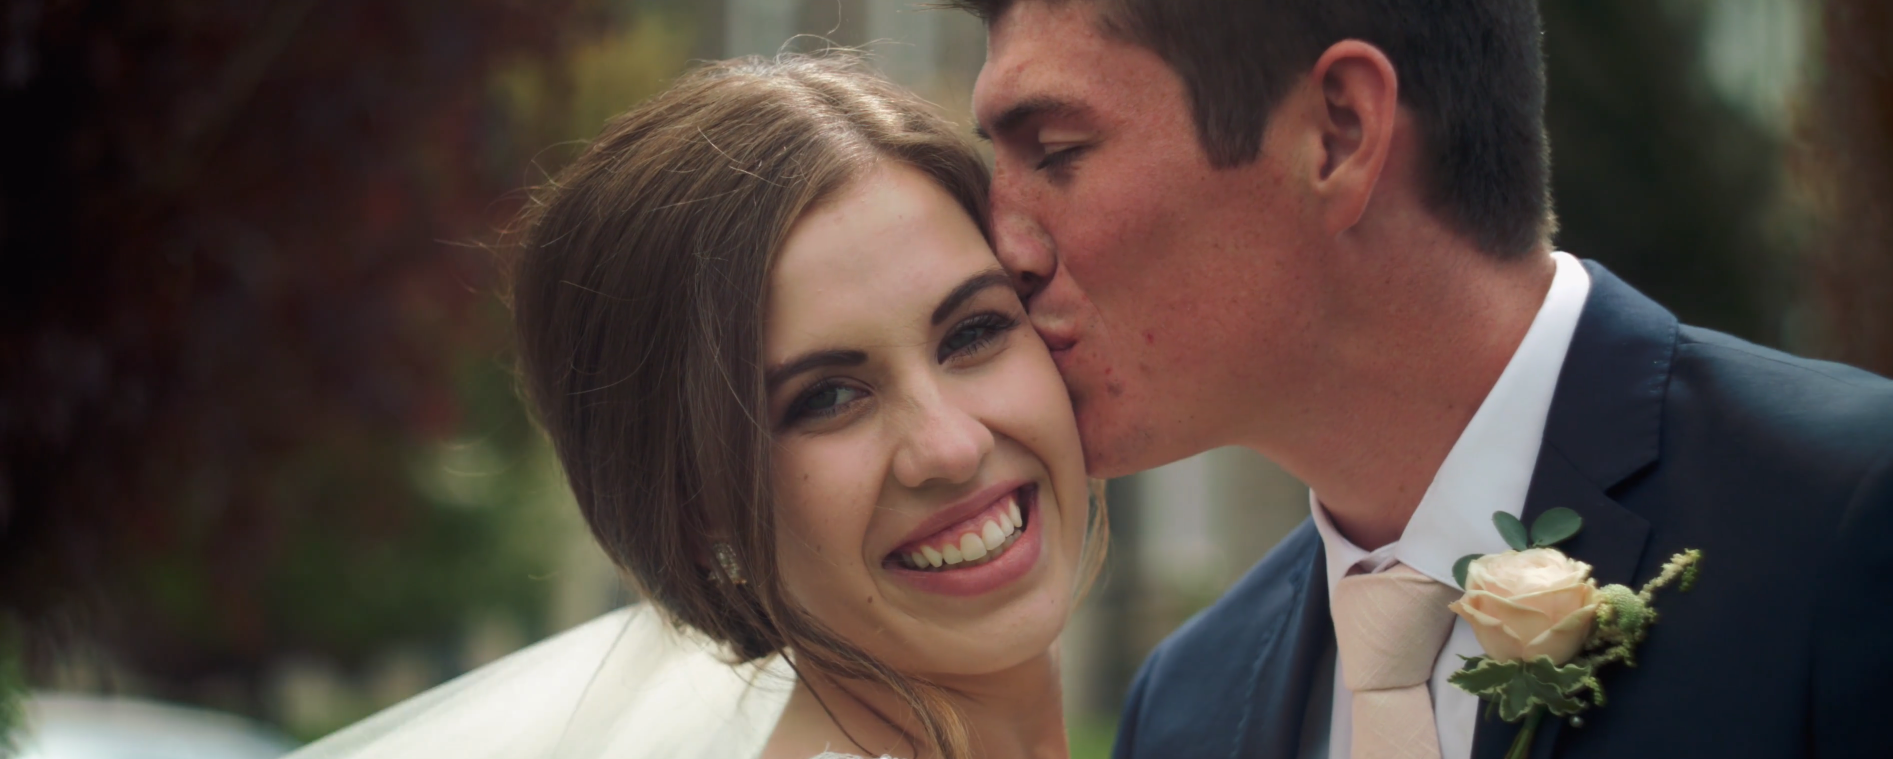 It's just so easy to see how happy this couple is, a smile is worth a thousand words!